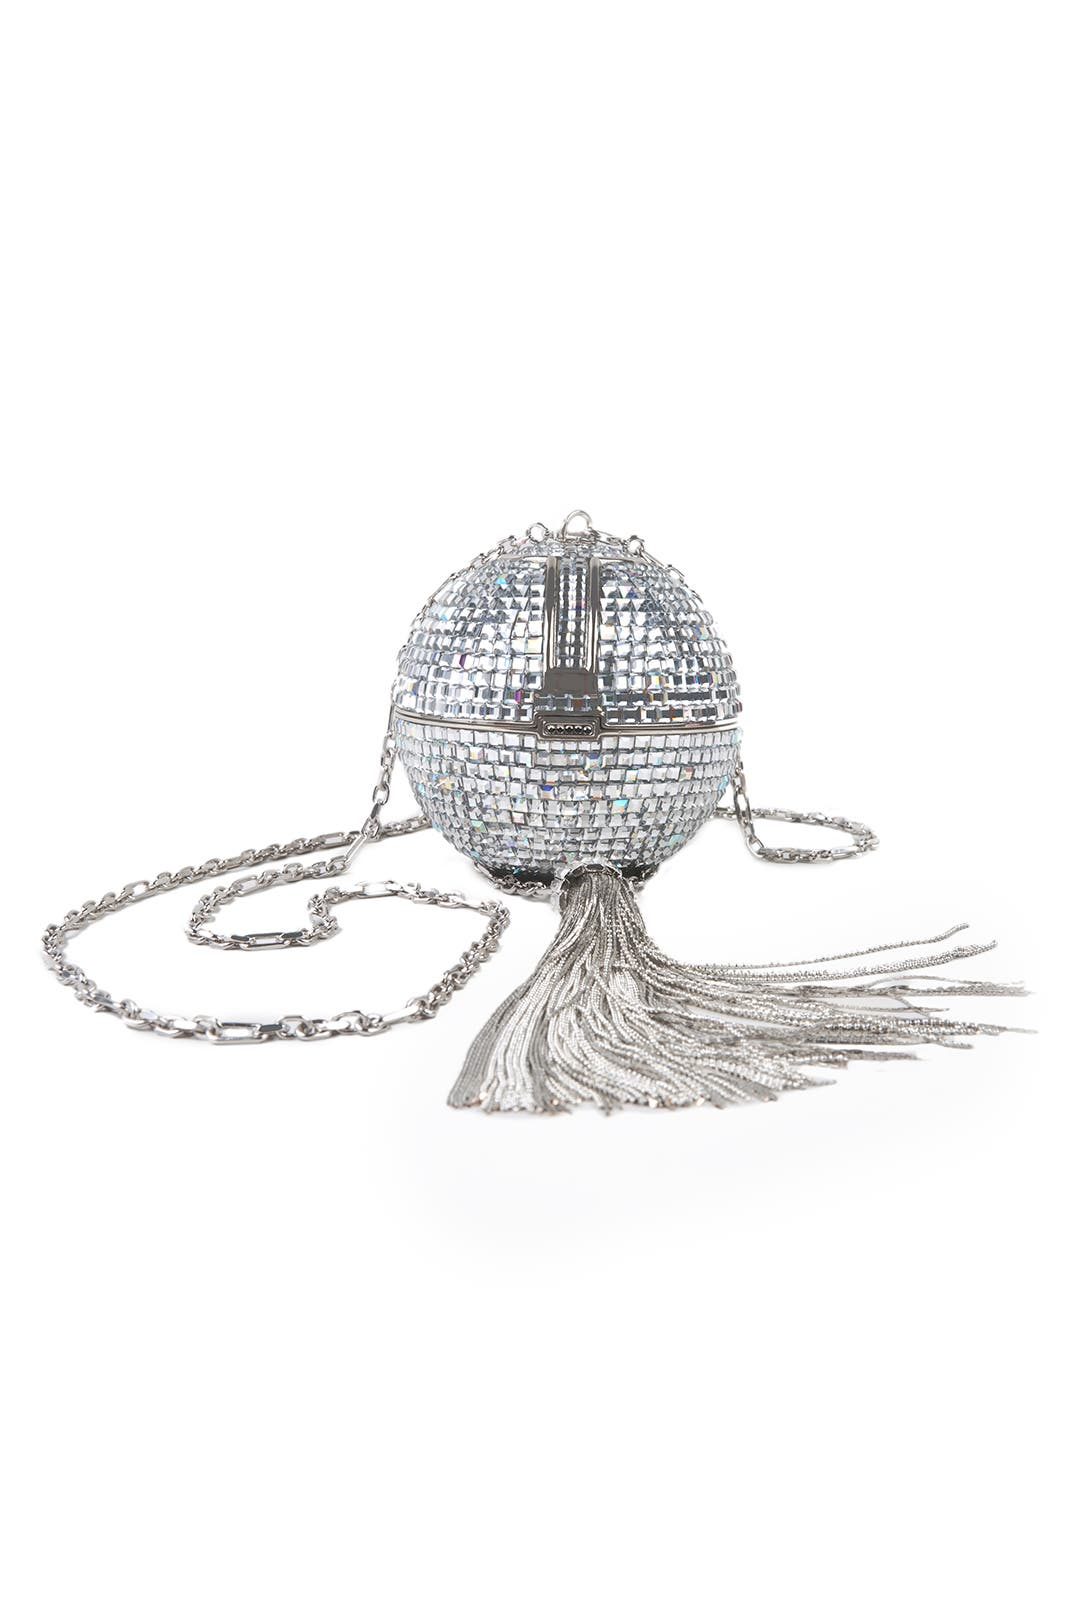 Disco Inferno Bag by Judith Leiber